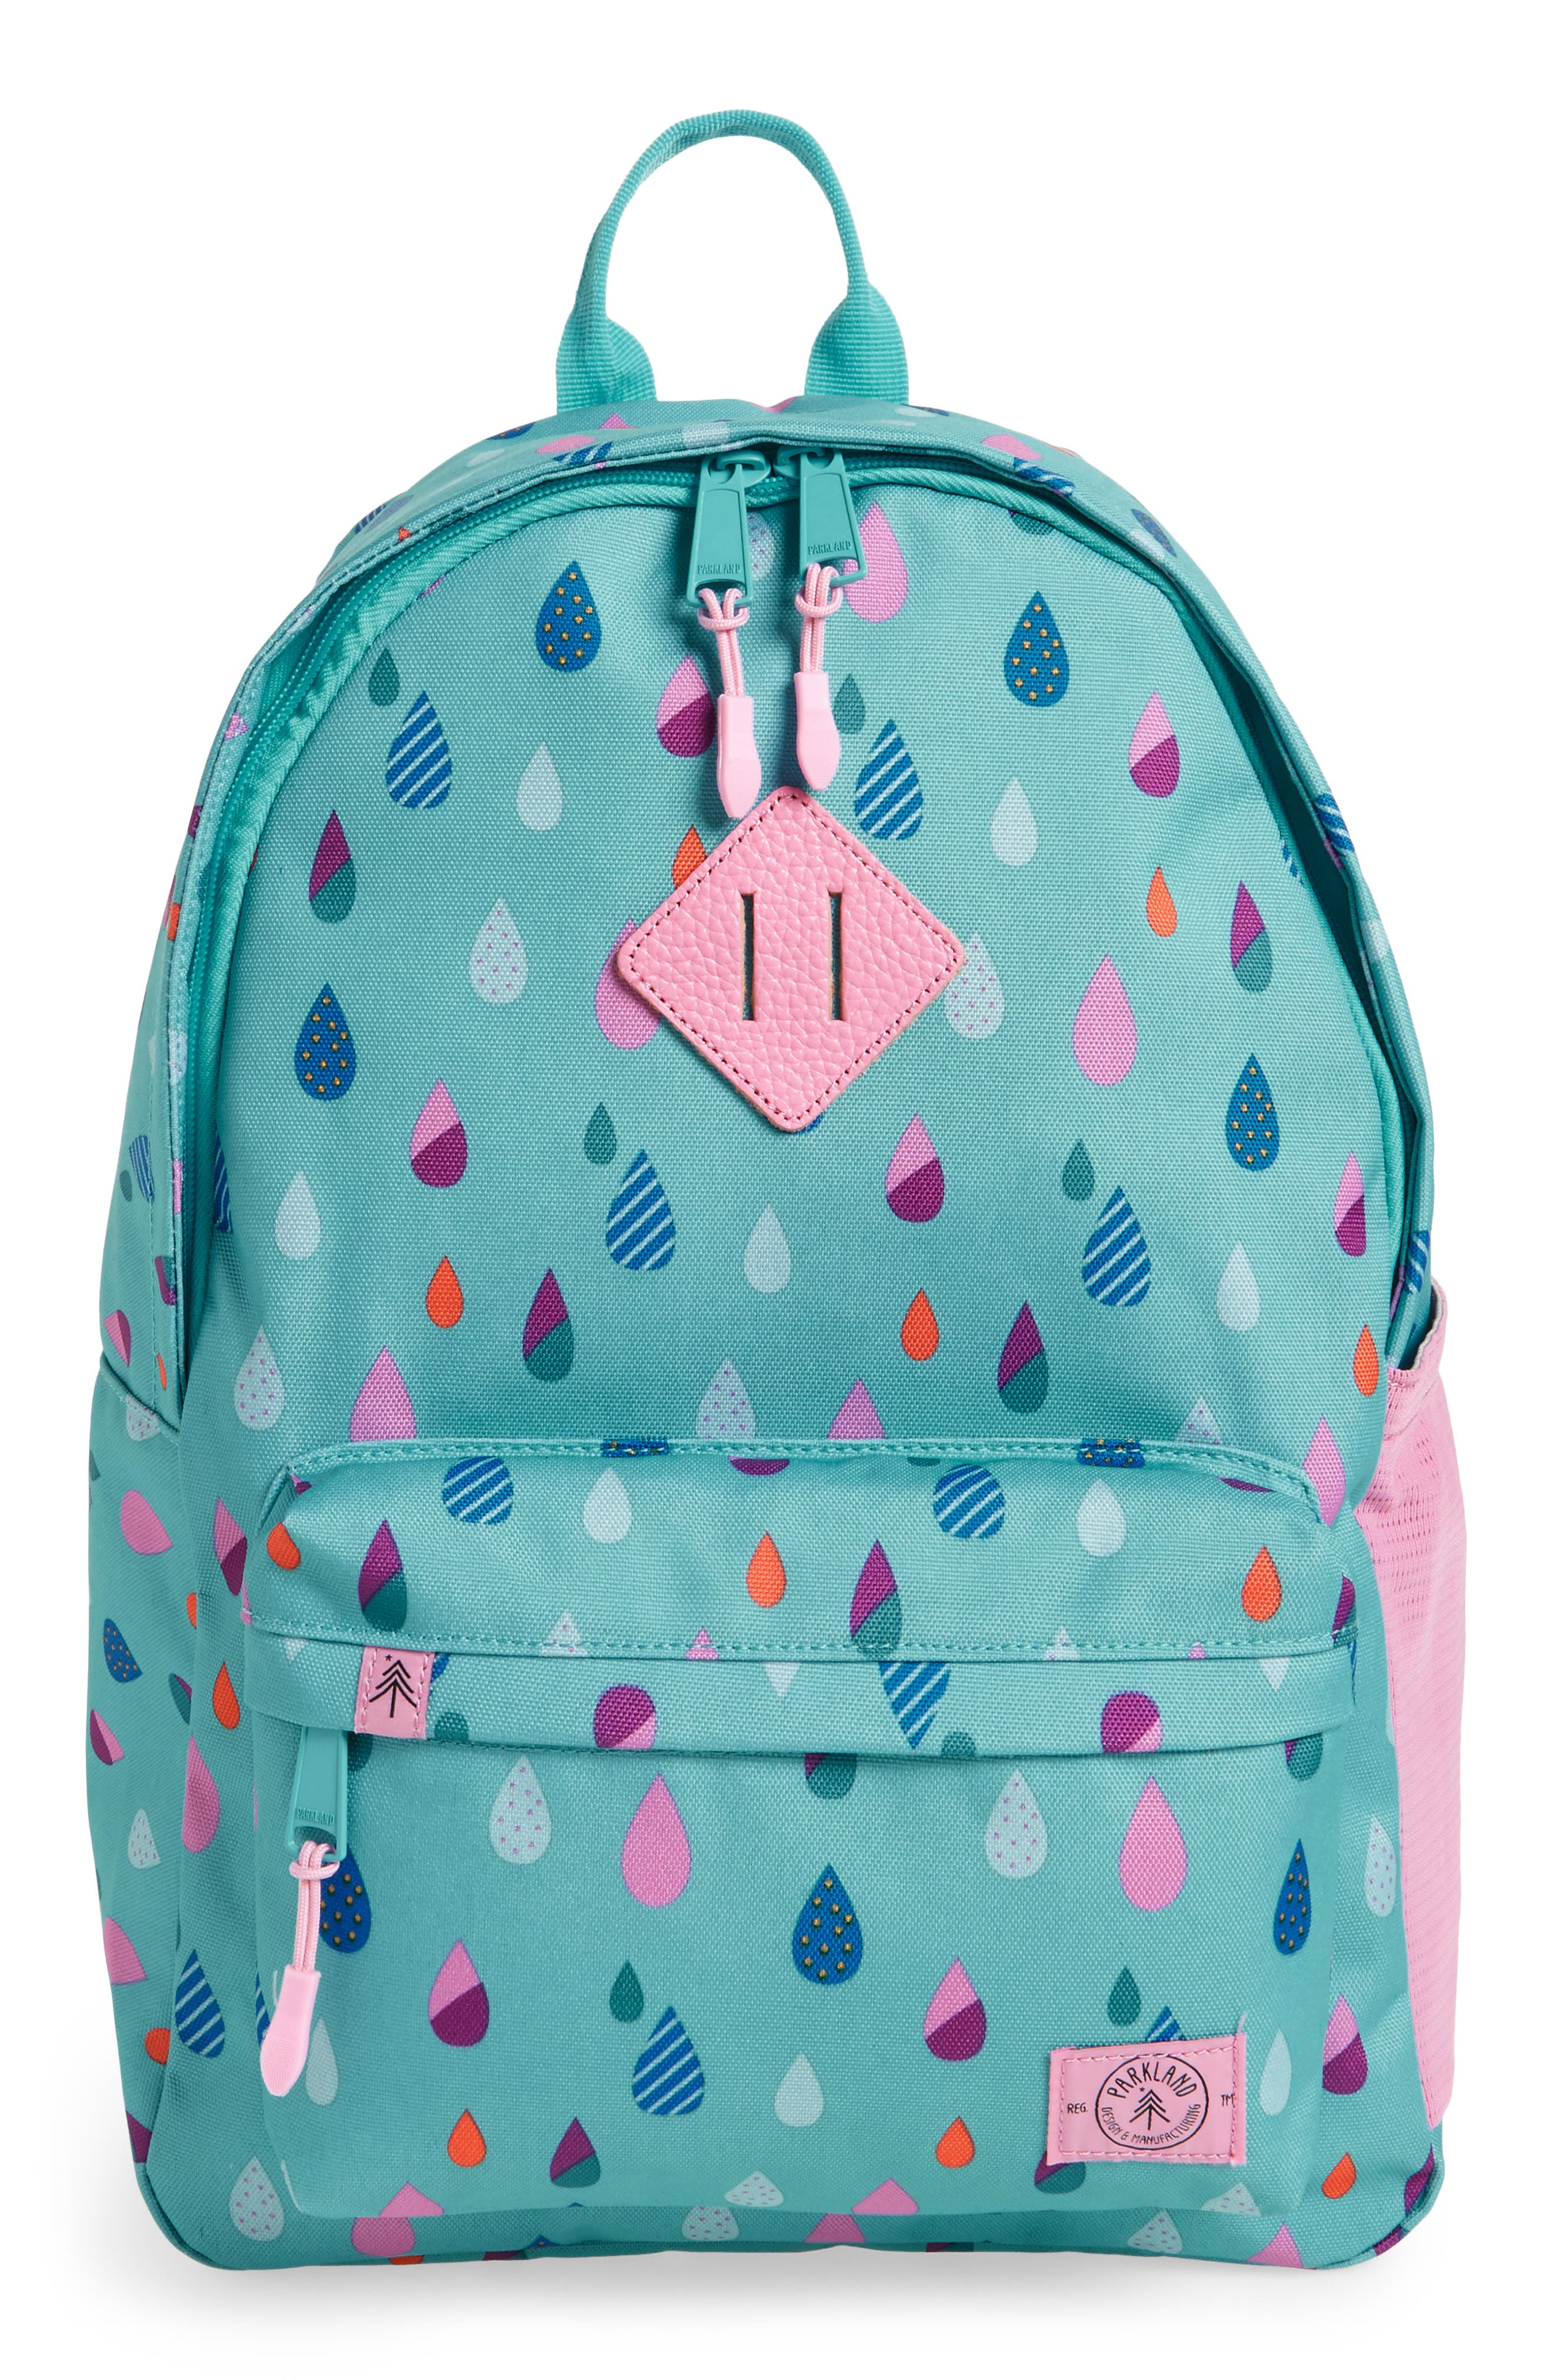 Bayside - Puddles Backpack,                         Main,                         color, 458